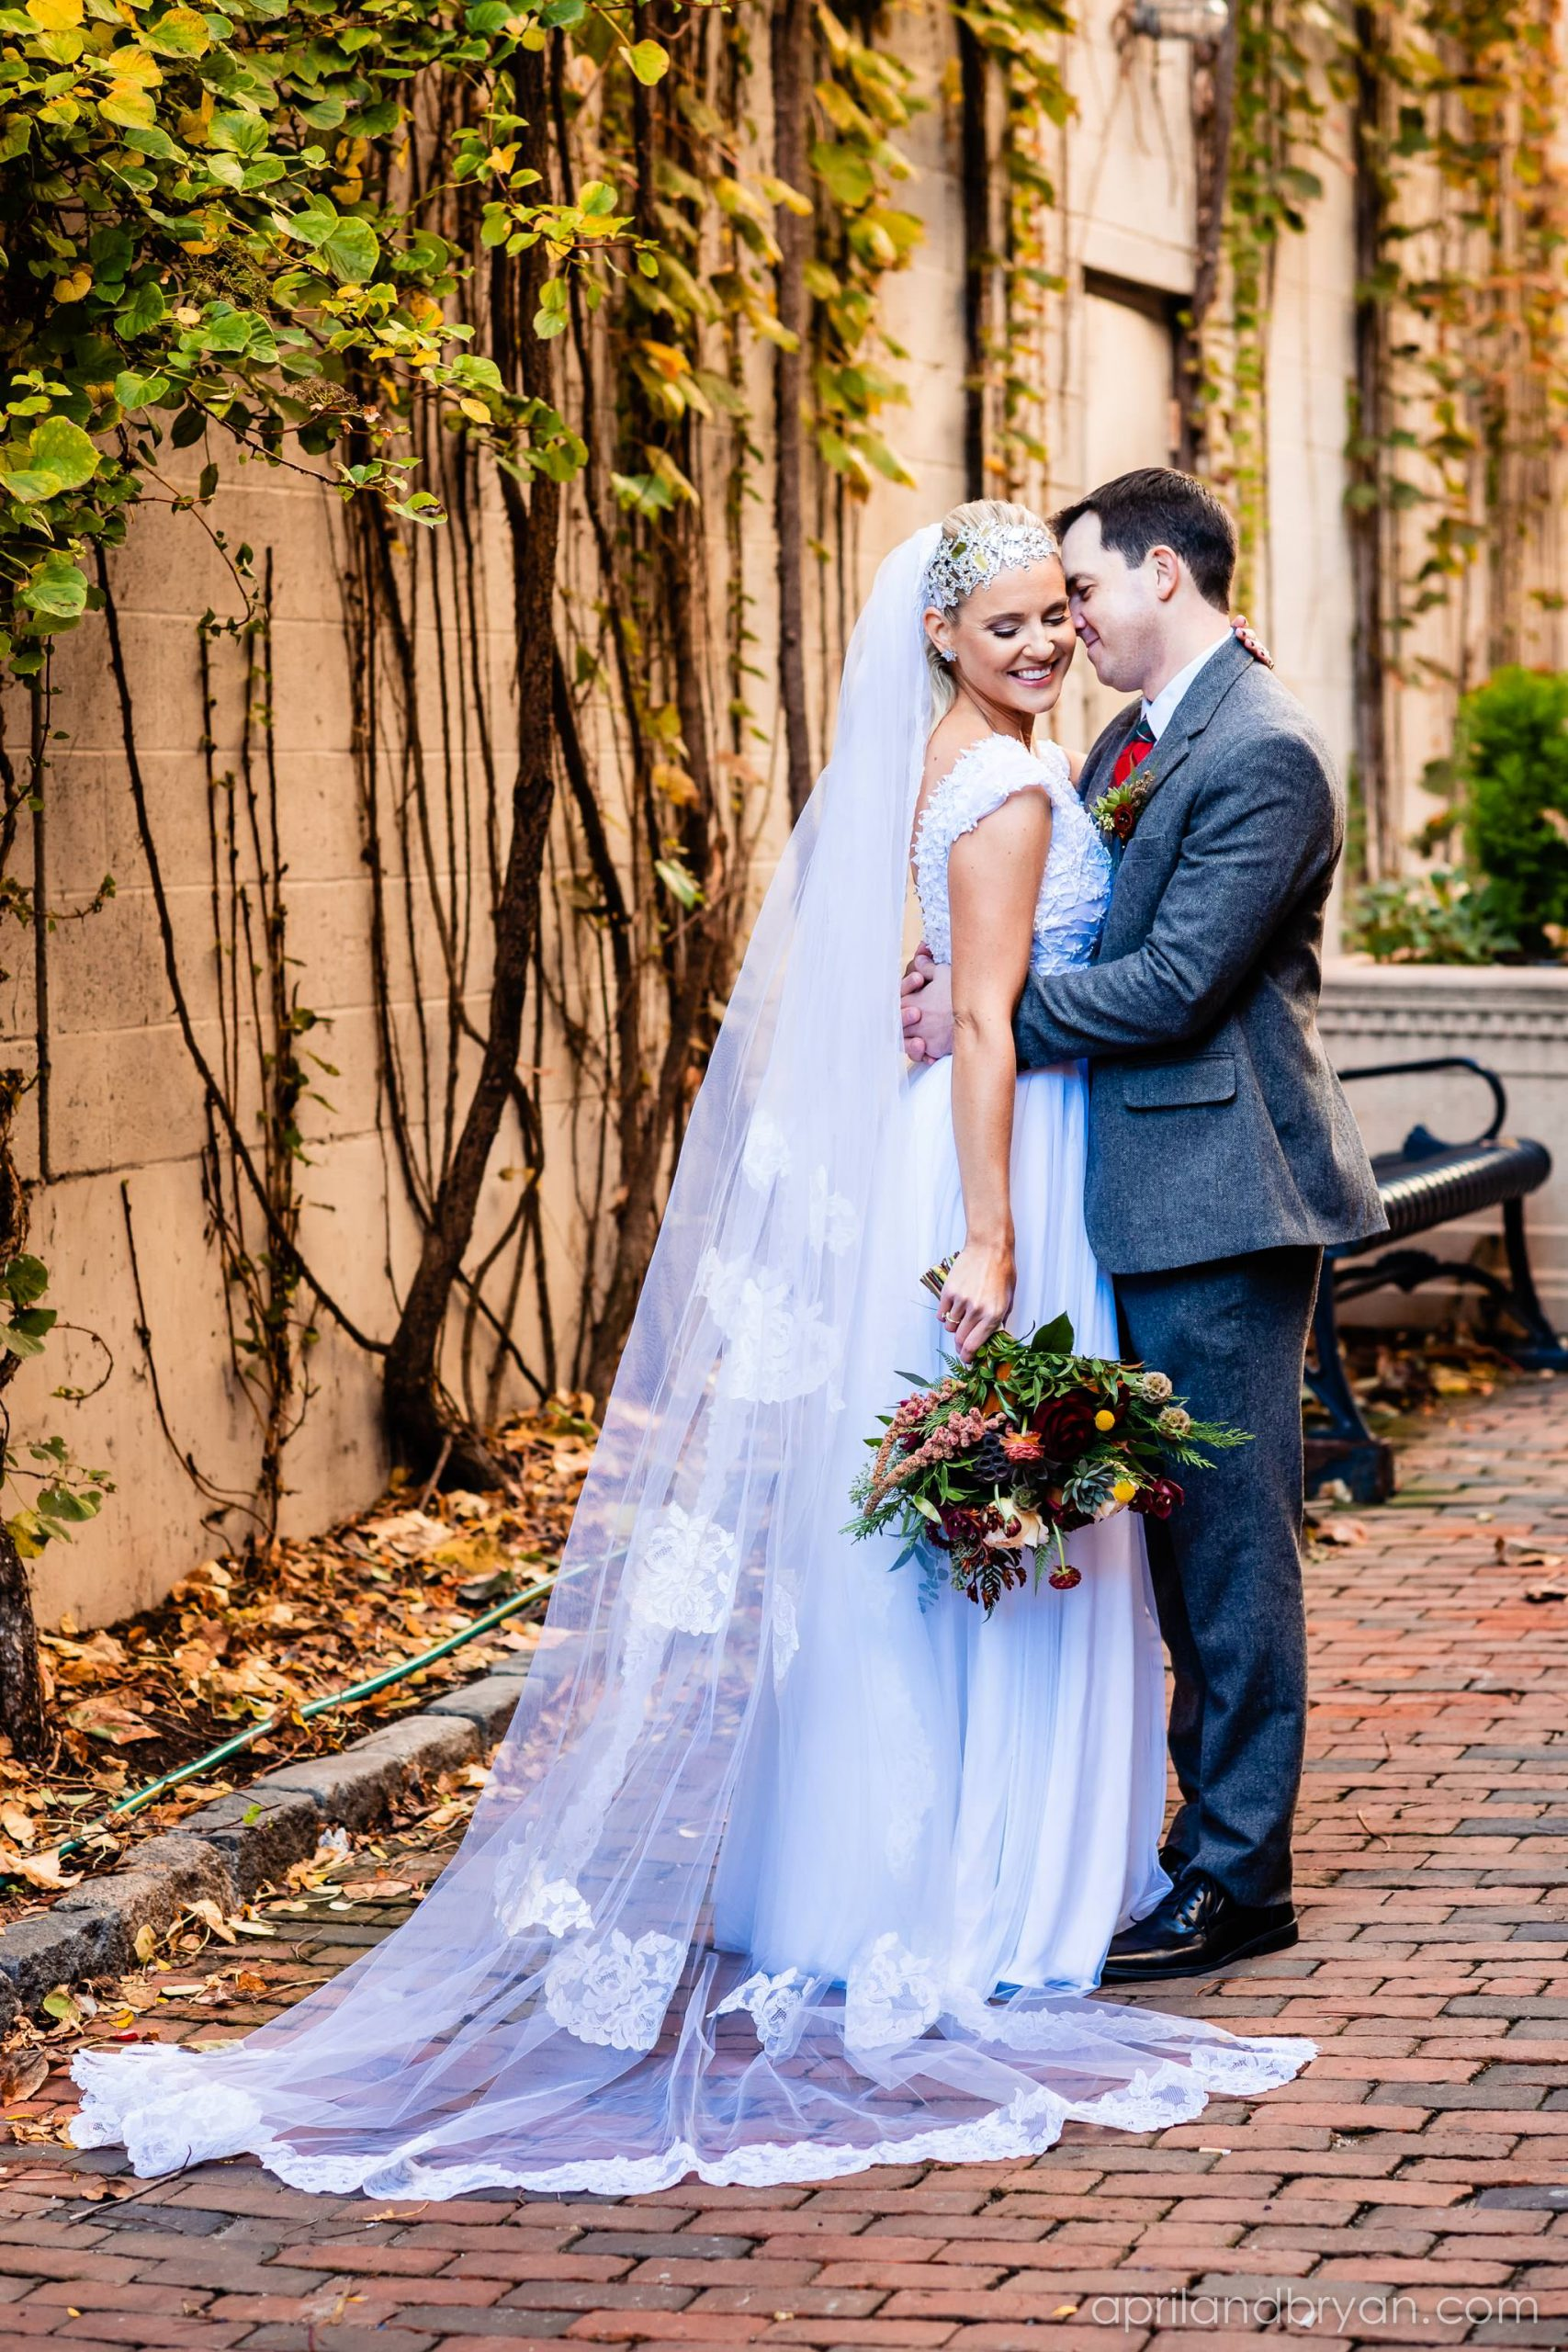 the two engage in a lover embrace with a pure white gown and succulents detailing her bouquet. Nicholas and Rebecca Fasnacht tie the not at Tellus360 on November 1, 2019. Captured by April & Bryan Photography and featured on Dream Weddings.